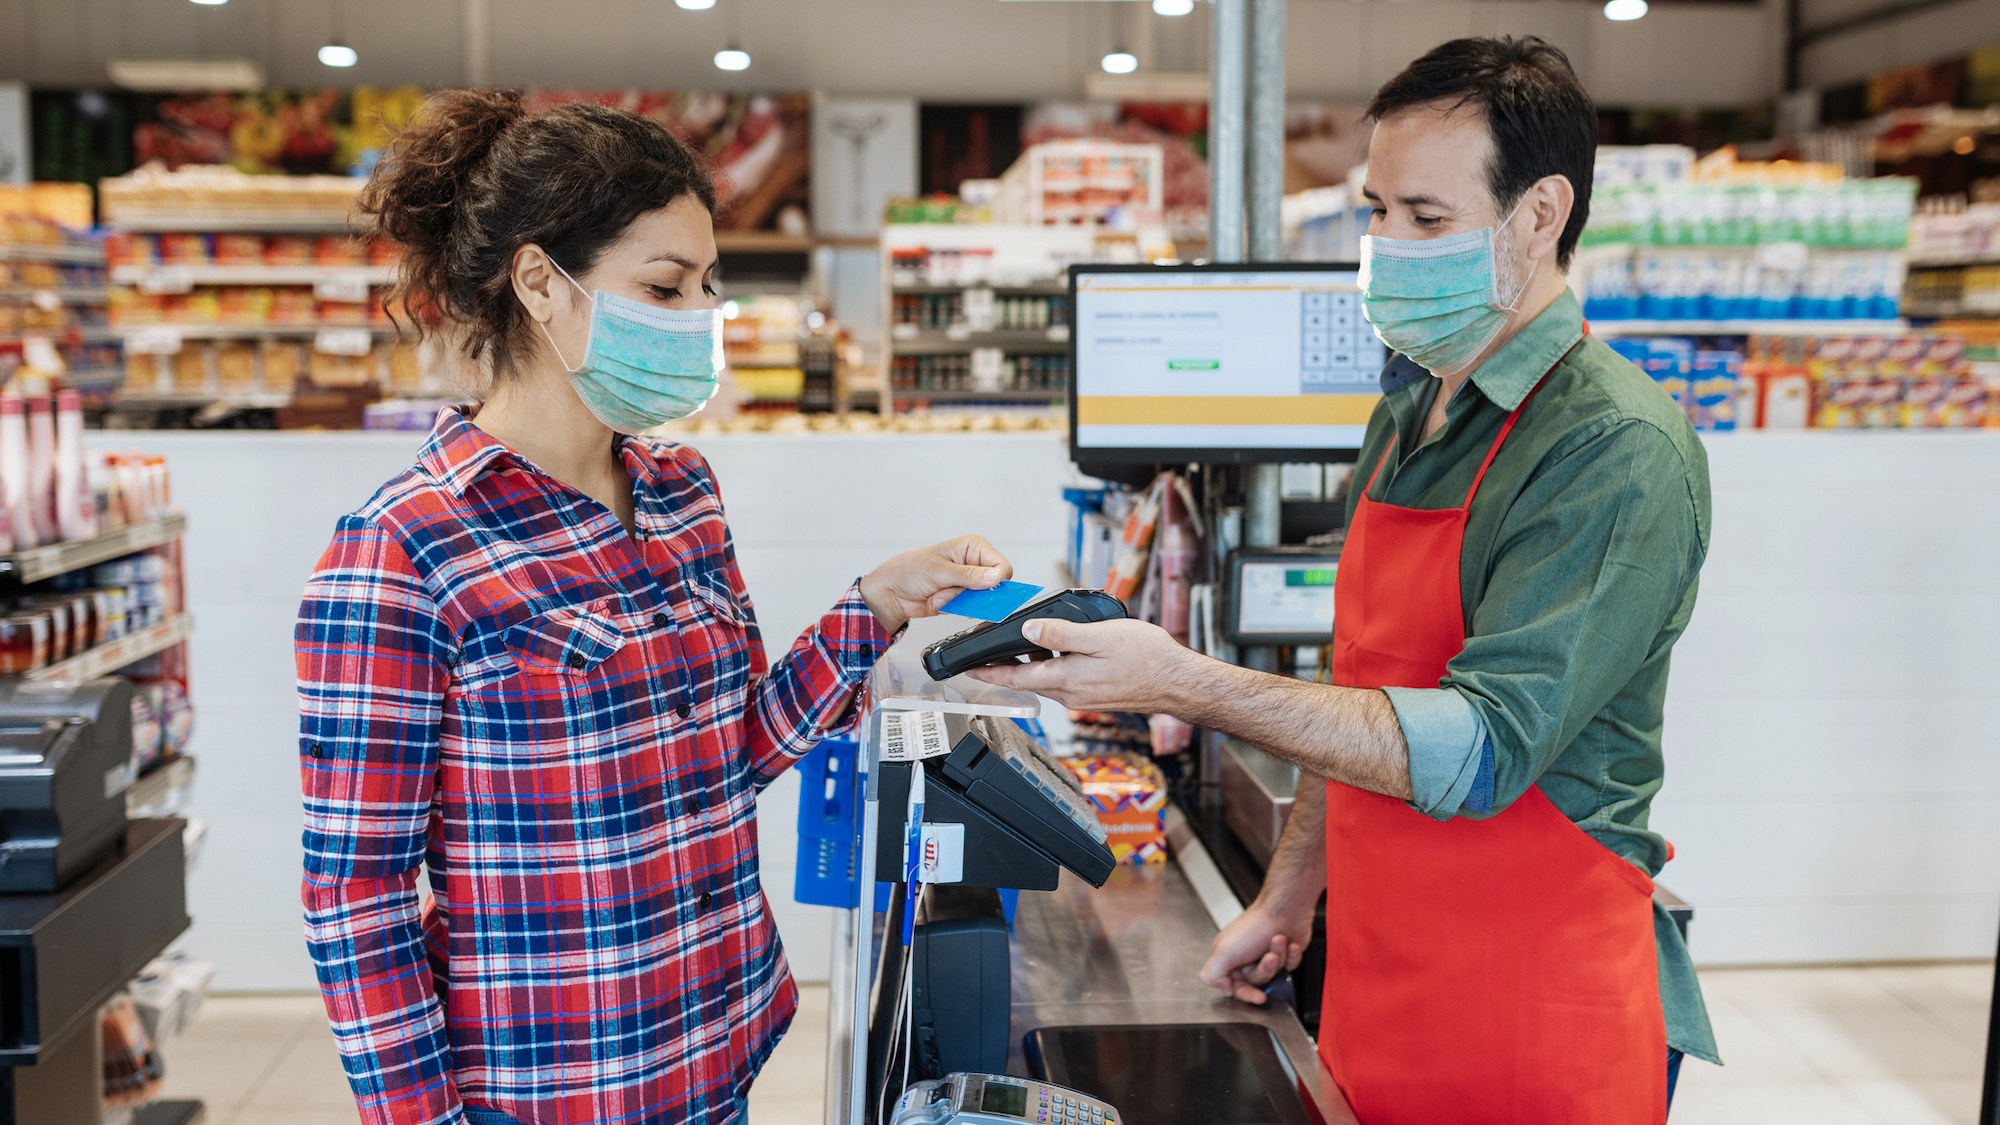 Supermarket cashier and buyer with face masks